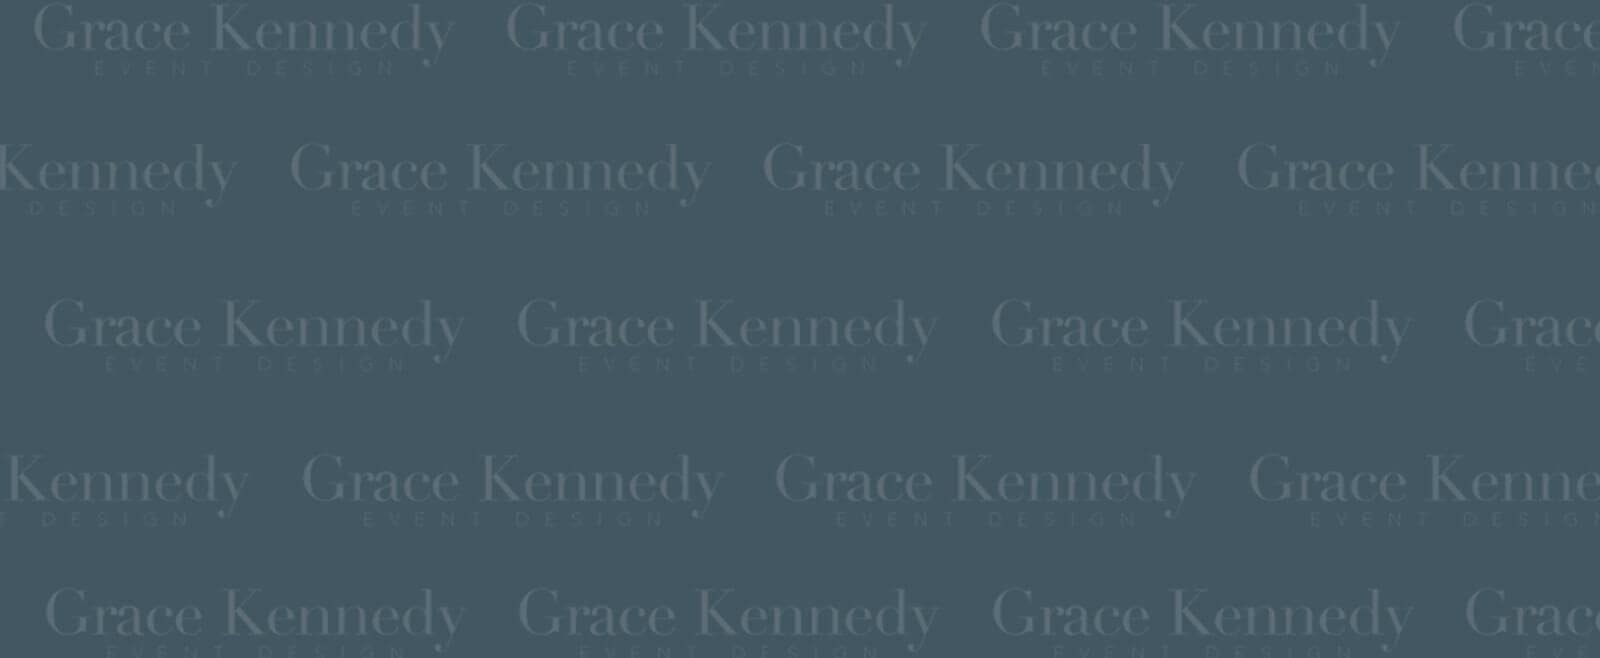 Grace Kennedy Events - Luxurious Weddings and Event Planning